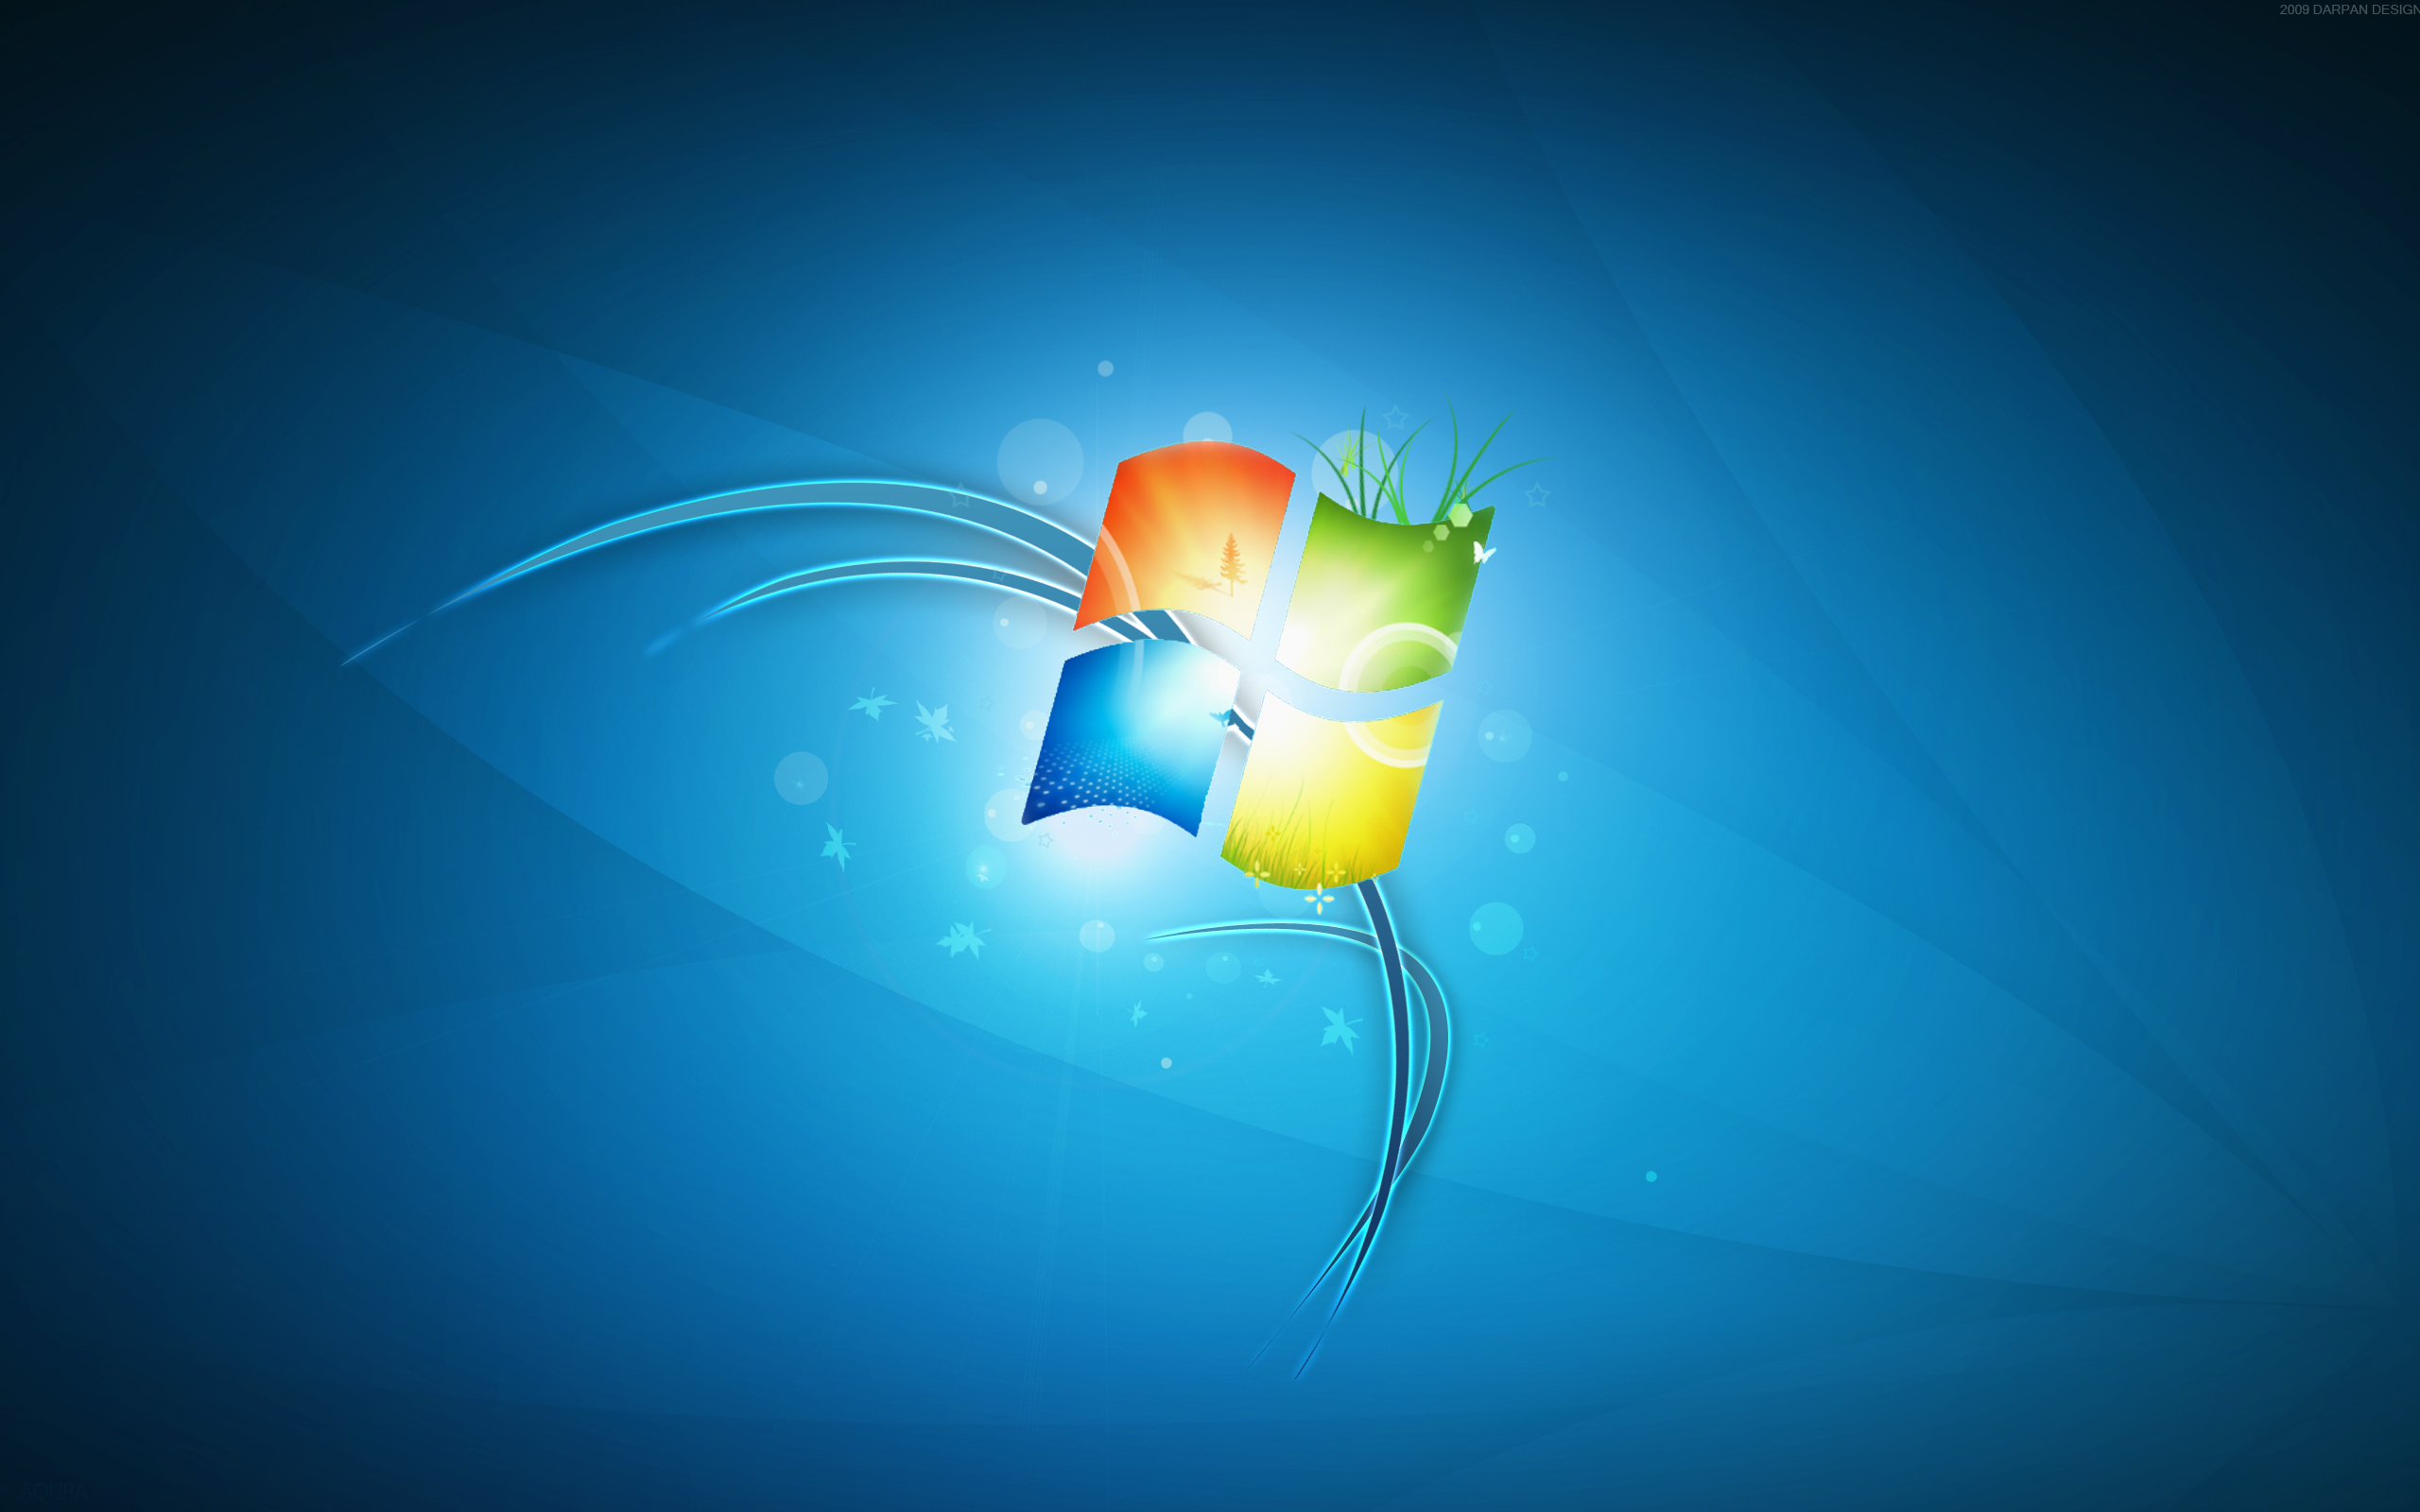 Wallpaper HD Free Download For Windows 7